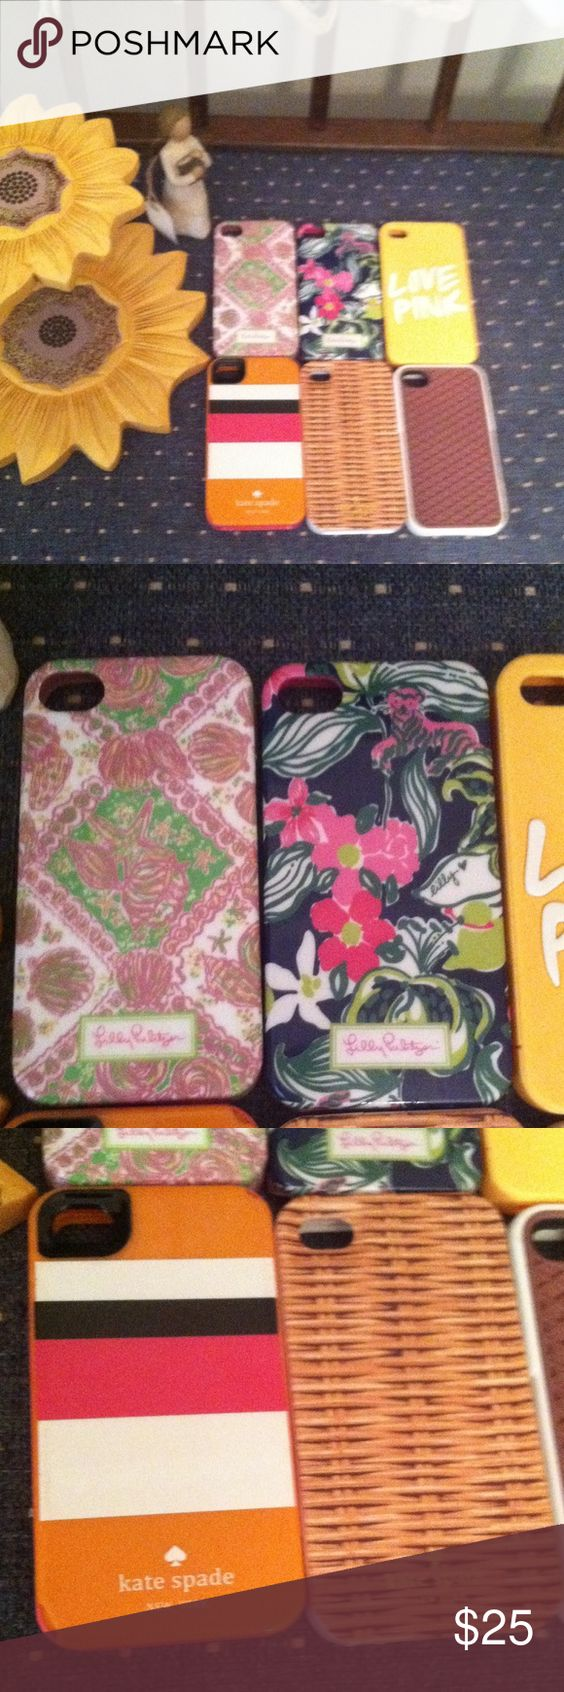 6 iPhone 4 4S cases Kate spade lilly pulitzer pink and vans Lilly Pulitzer Accessories Phone Cases